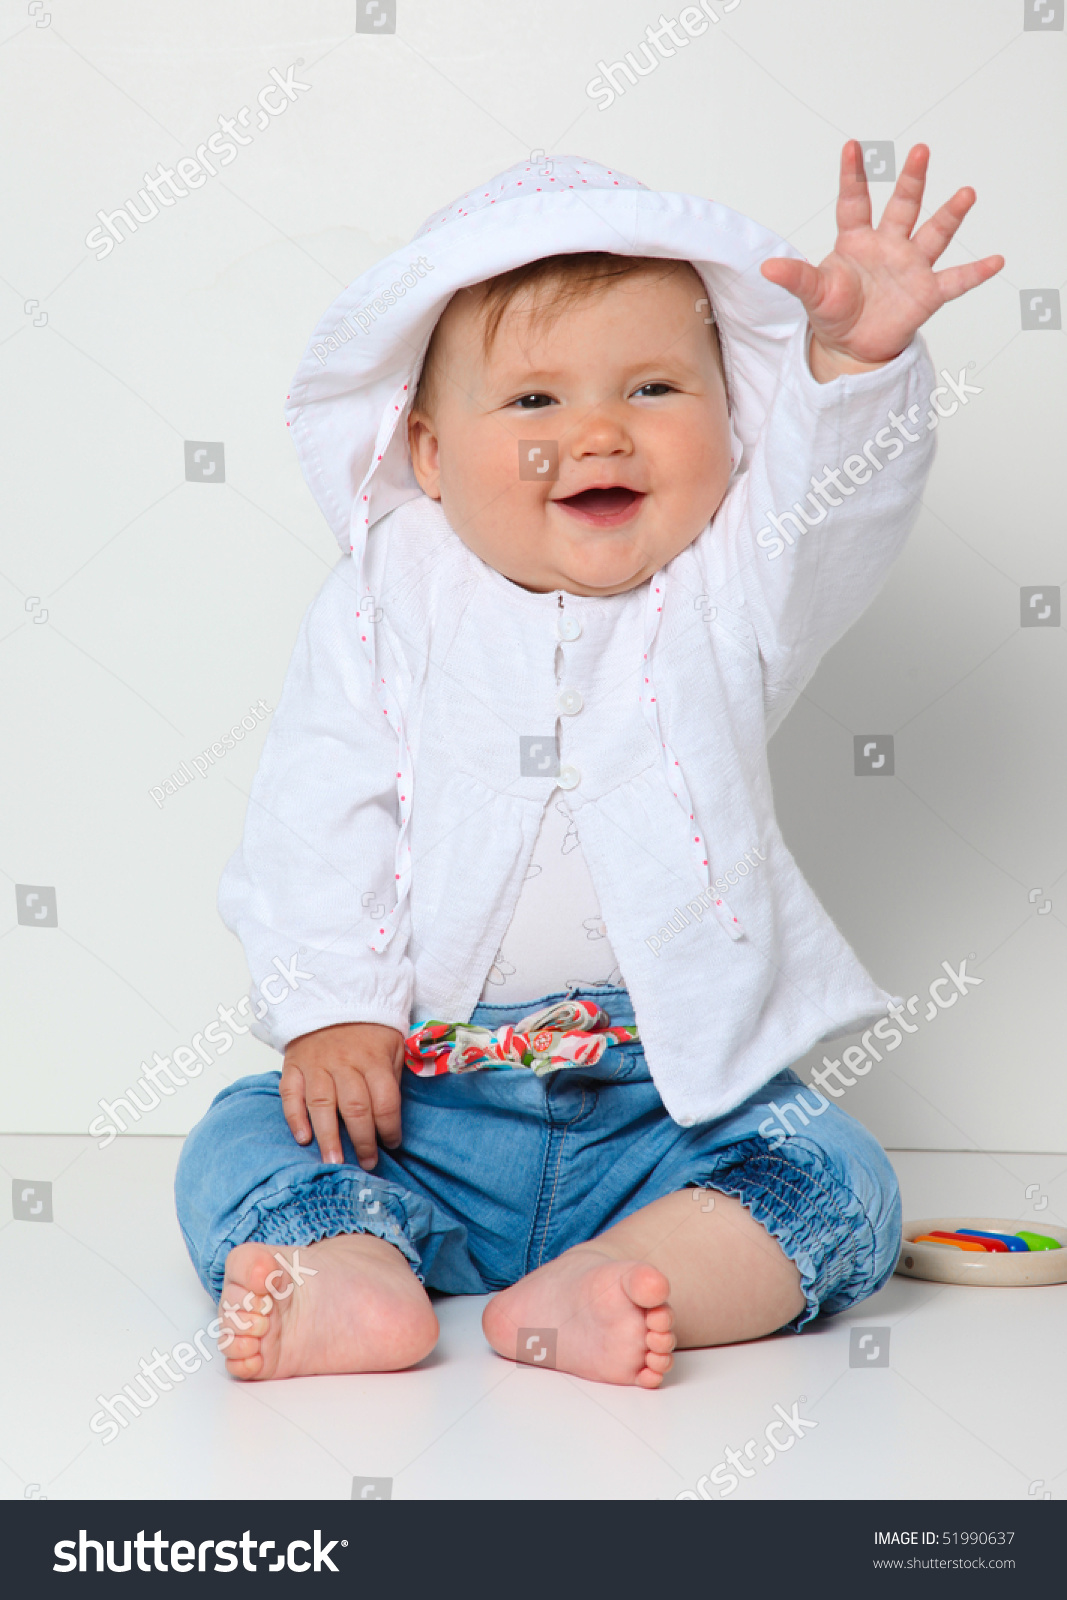 7 Month Old Baby Waving Hat Stock Photo 51990637 - Shutterstock